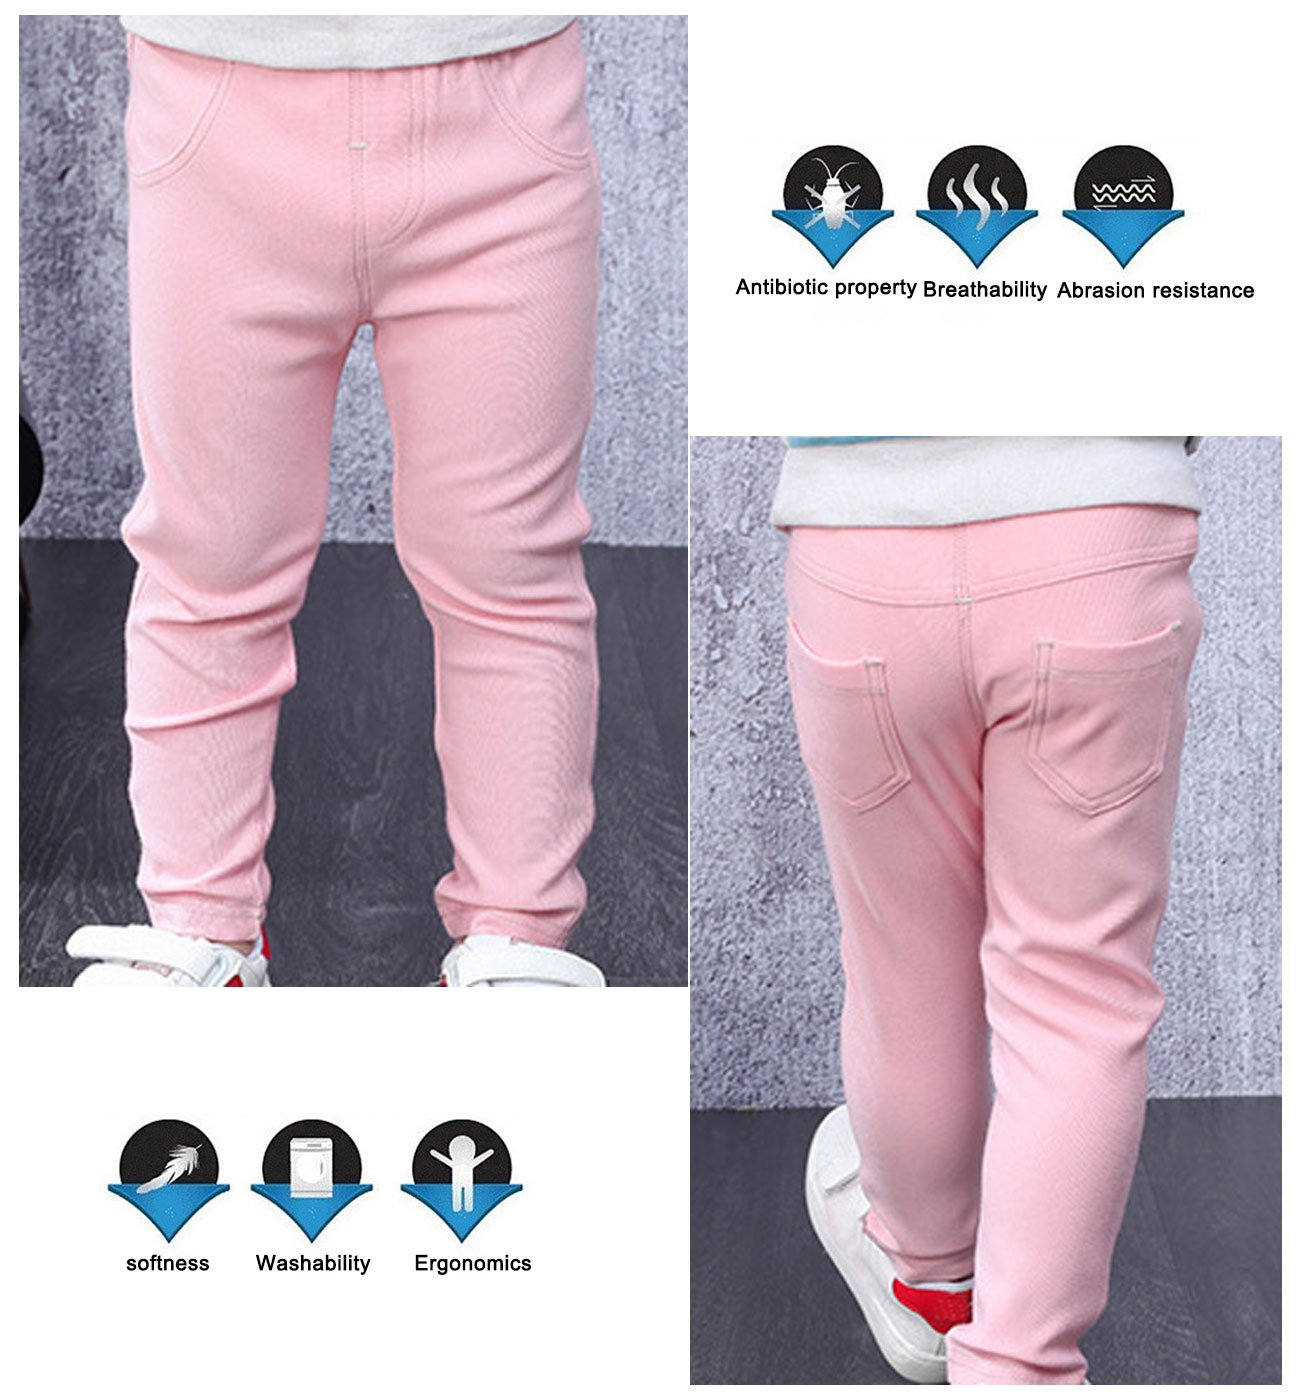 Baby Girls Denim Jeans Stretchy Leggings Pants Cotton Breathable Trousers Elastic Waist Summer Pants for Baby Boys Girls 0-6 Months Pink by MMWORM (Image #4)